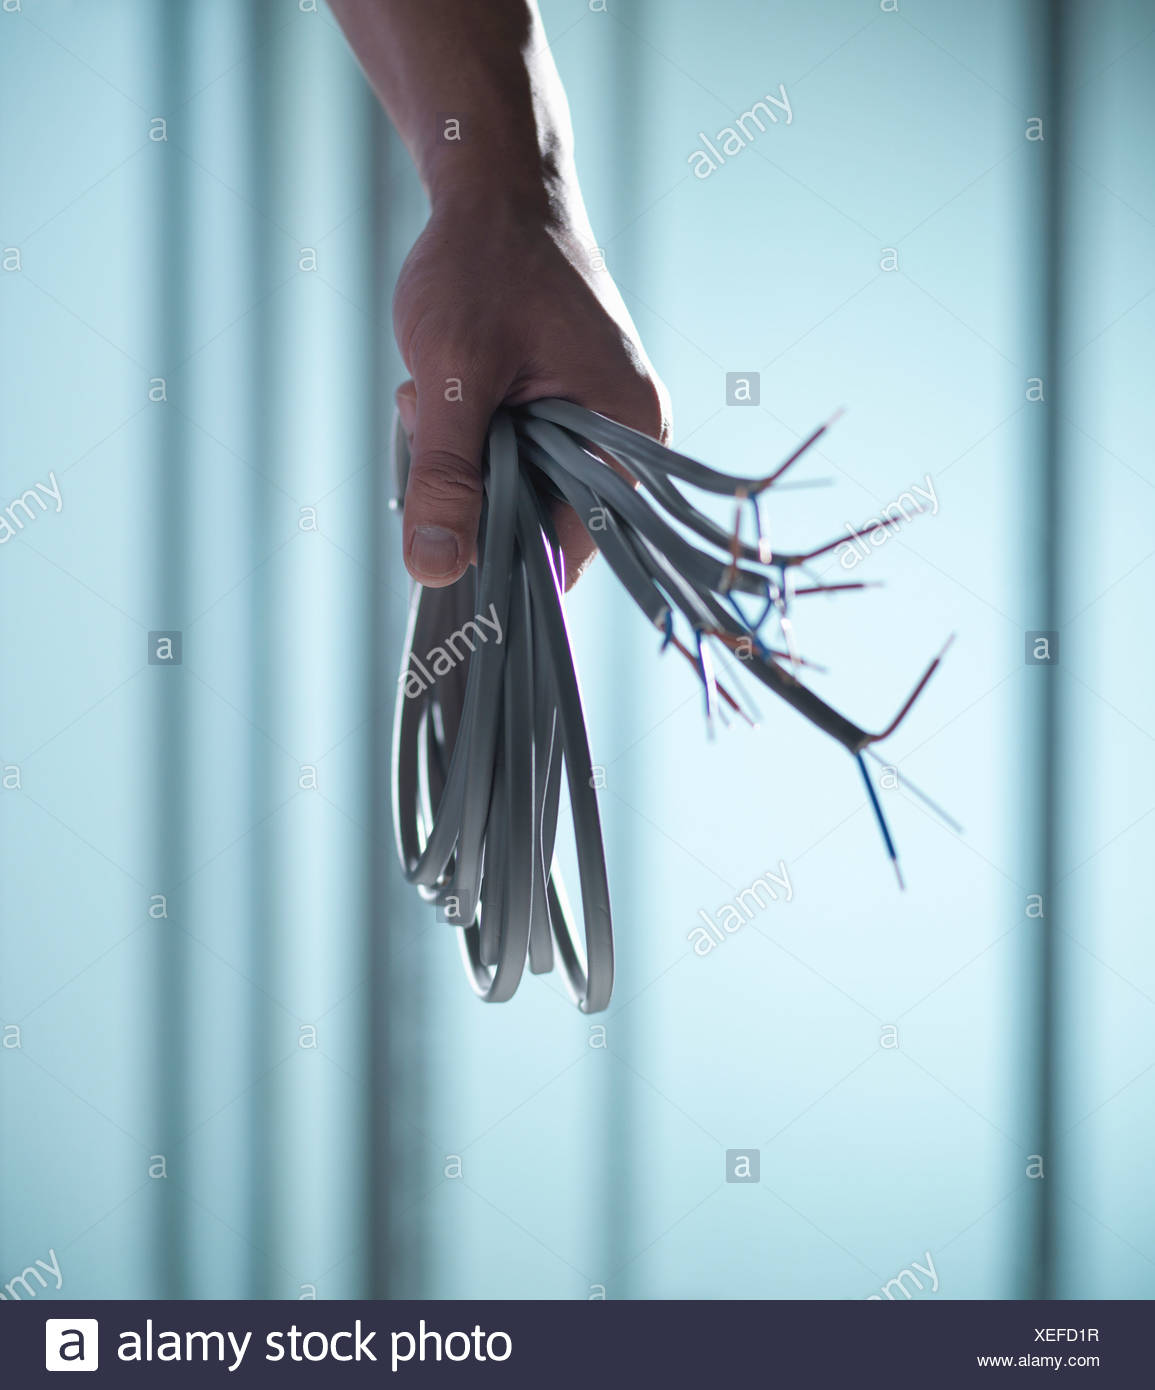 Close up of hand holding cords - Stock Image